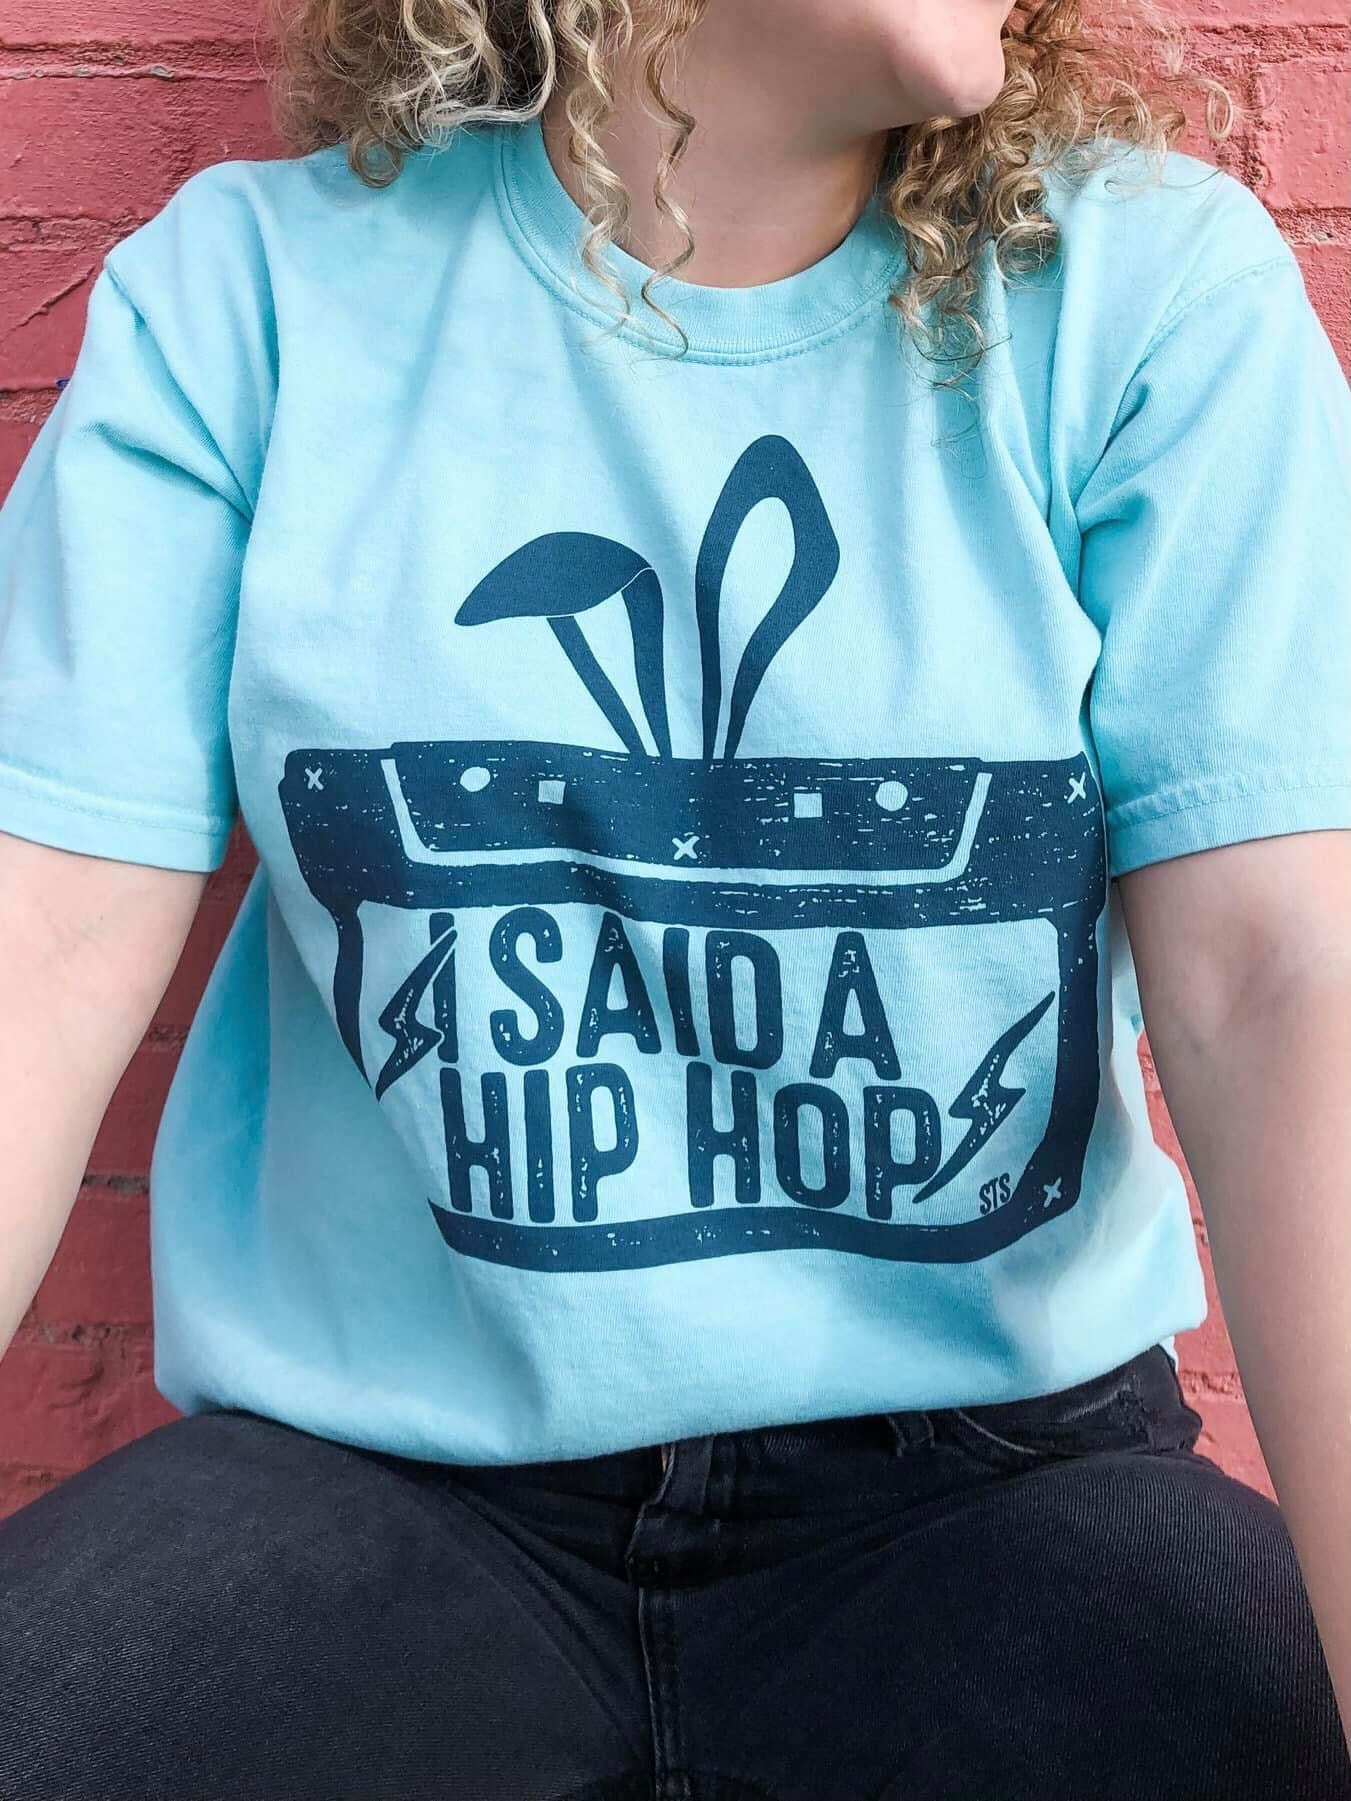 I Said a Hip Hop Tee